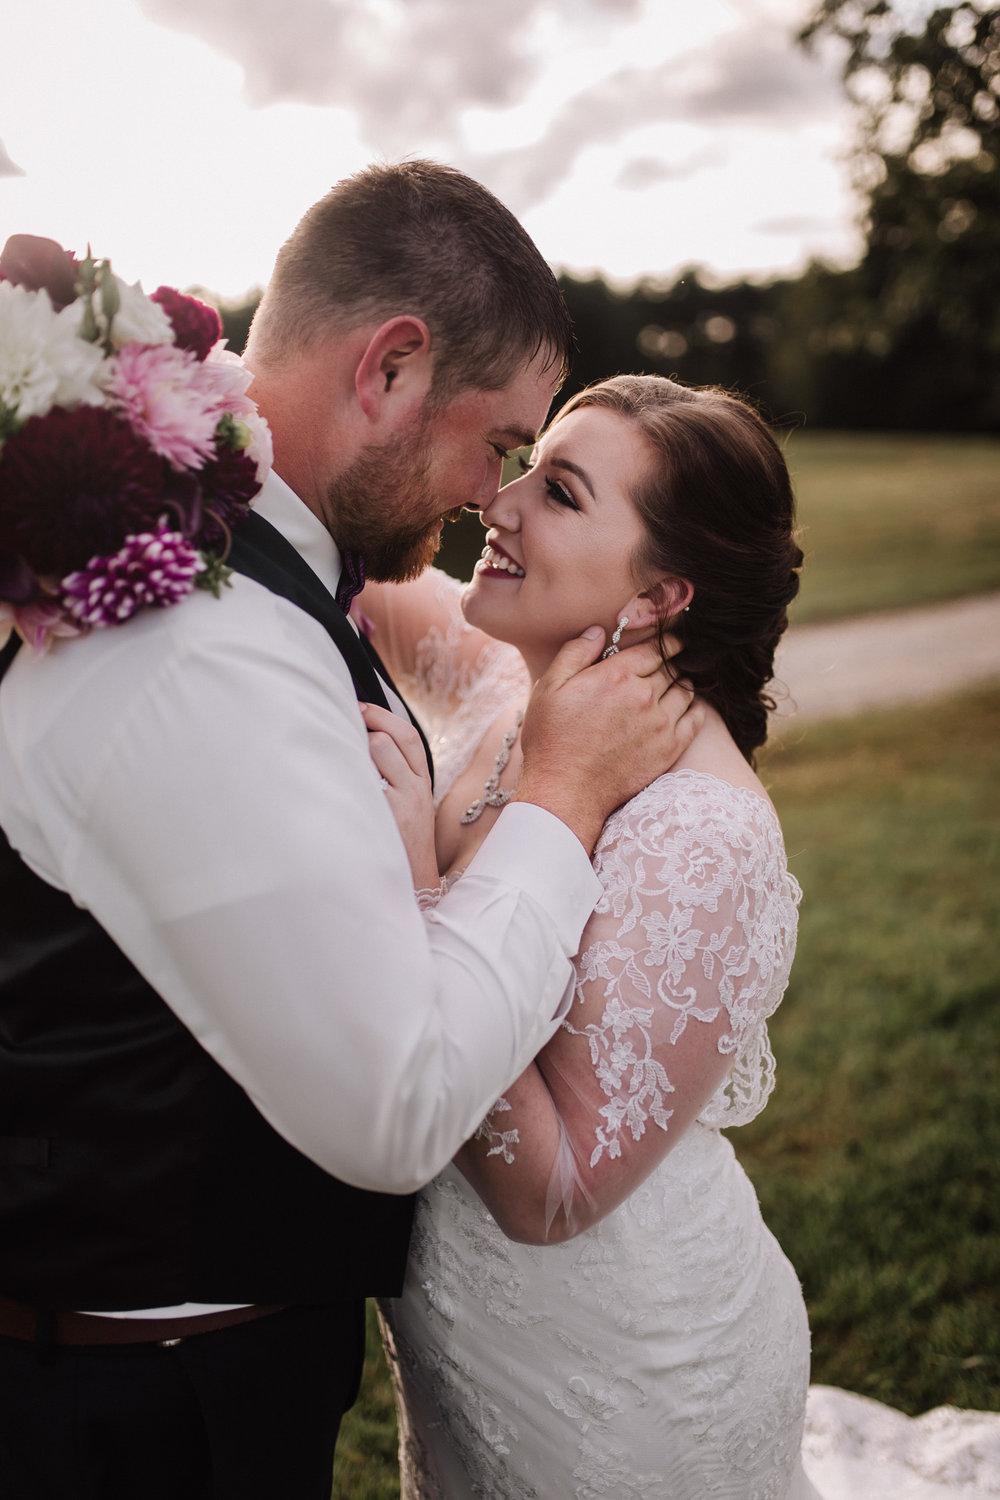 Classy, Southern, Country Wedding   Bridal and Groom portraits at Atkinson Farms in Danville, Virginia   Greensboro Winston-Salem, NC Wedding Photographer